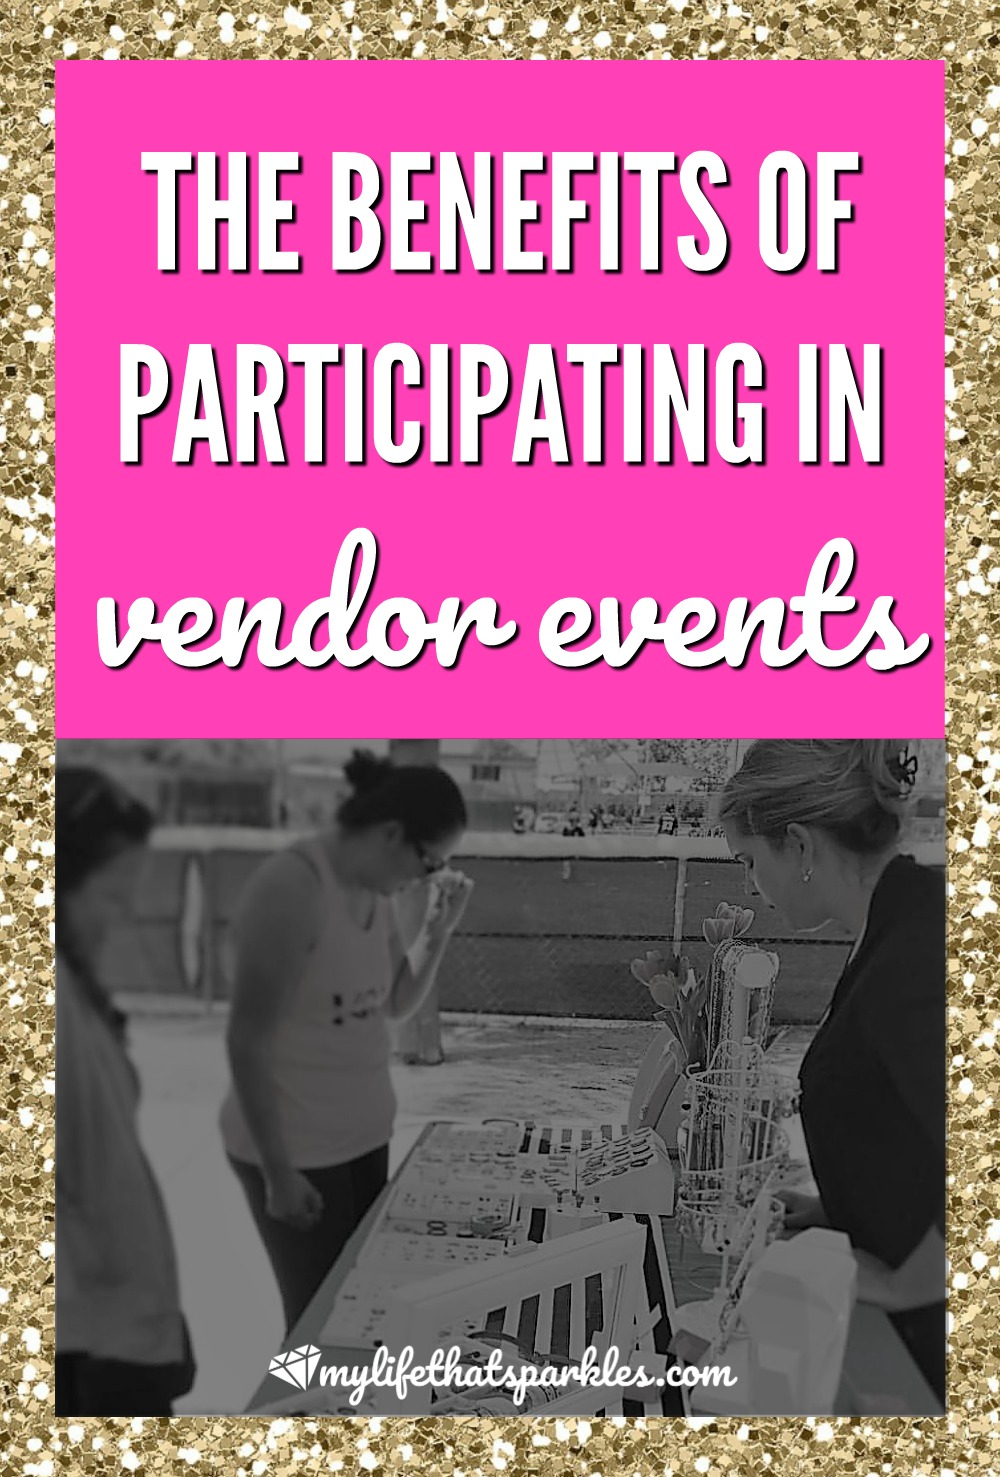 Benefits of Vendor Event Participation for Direct Sellers